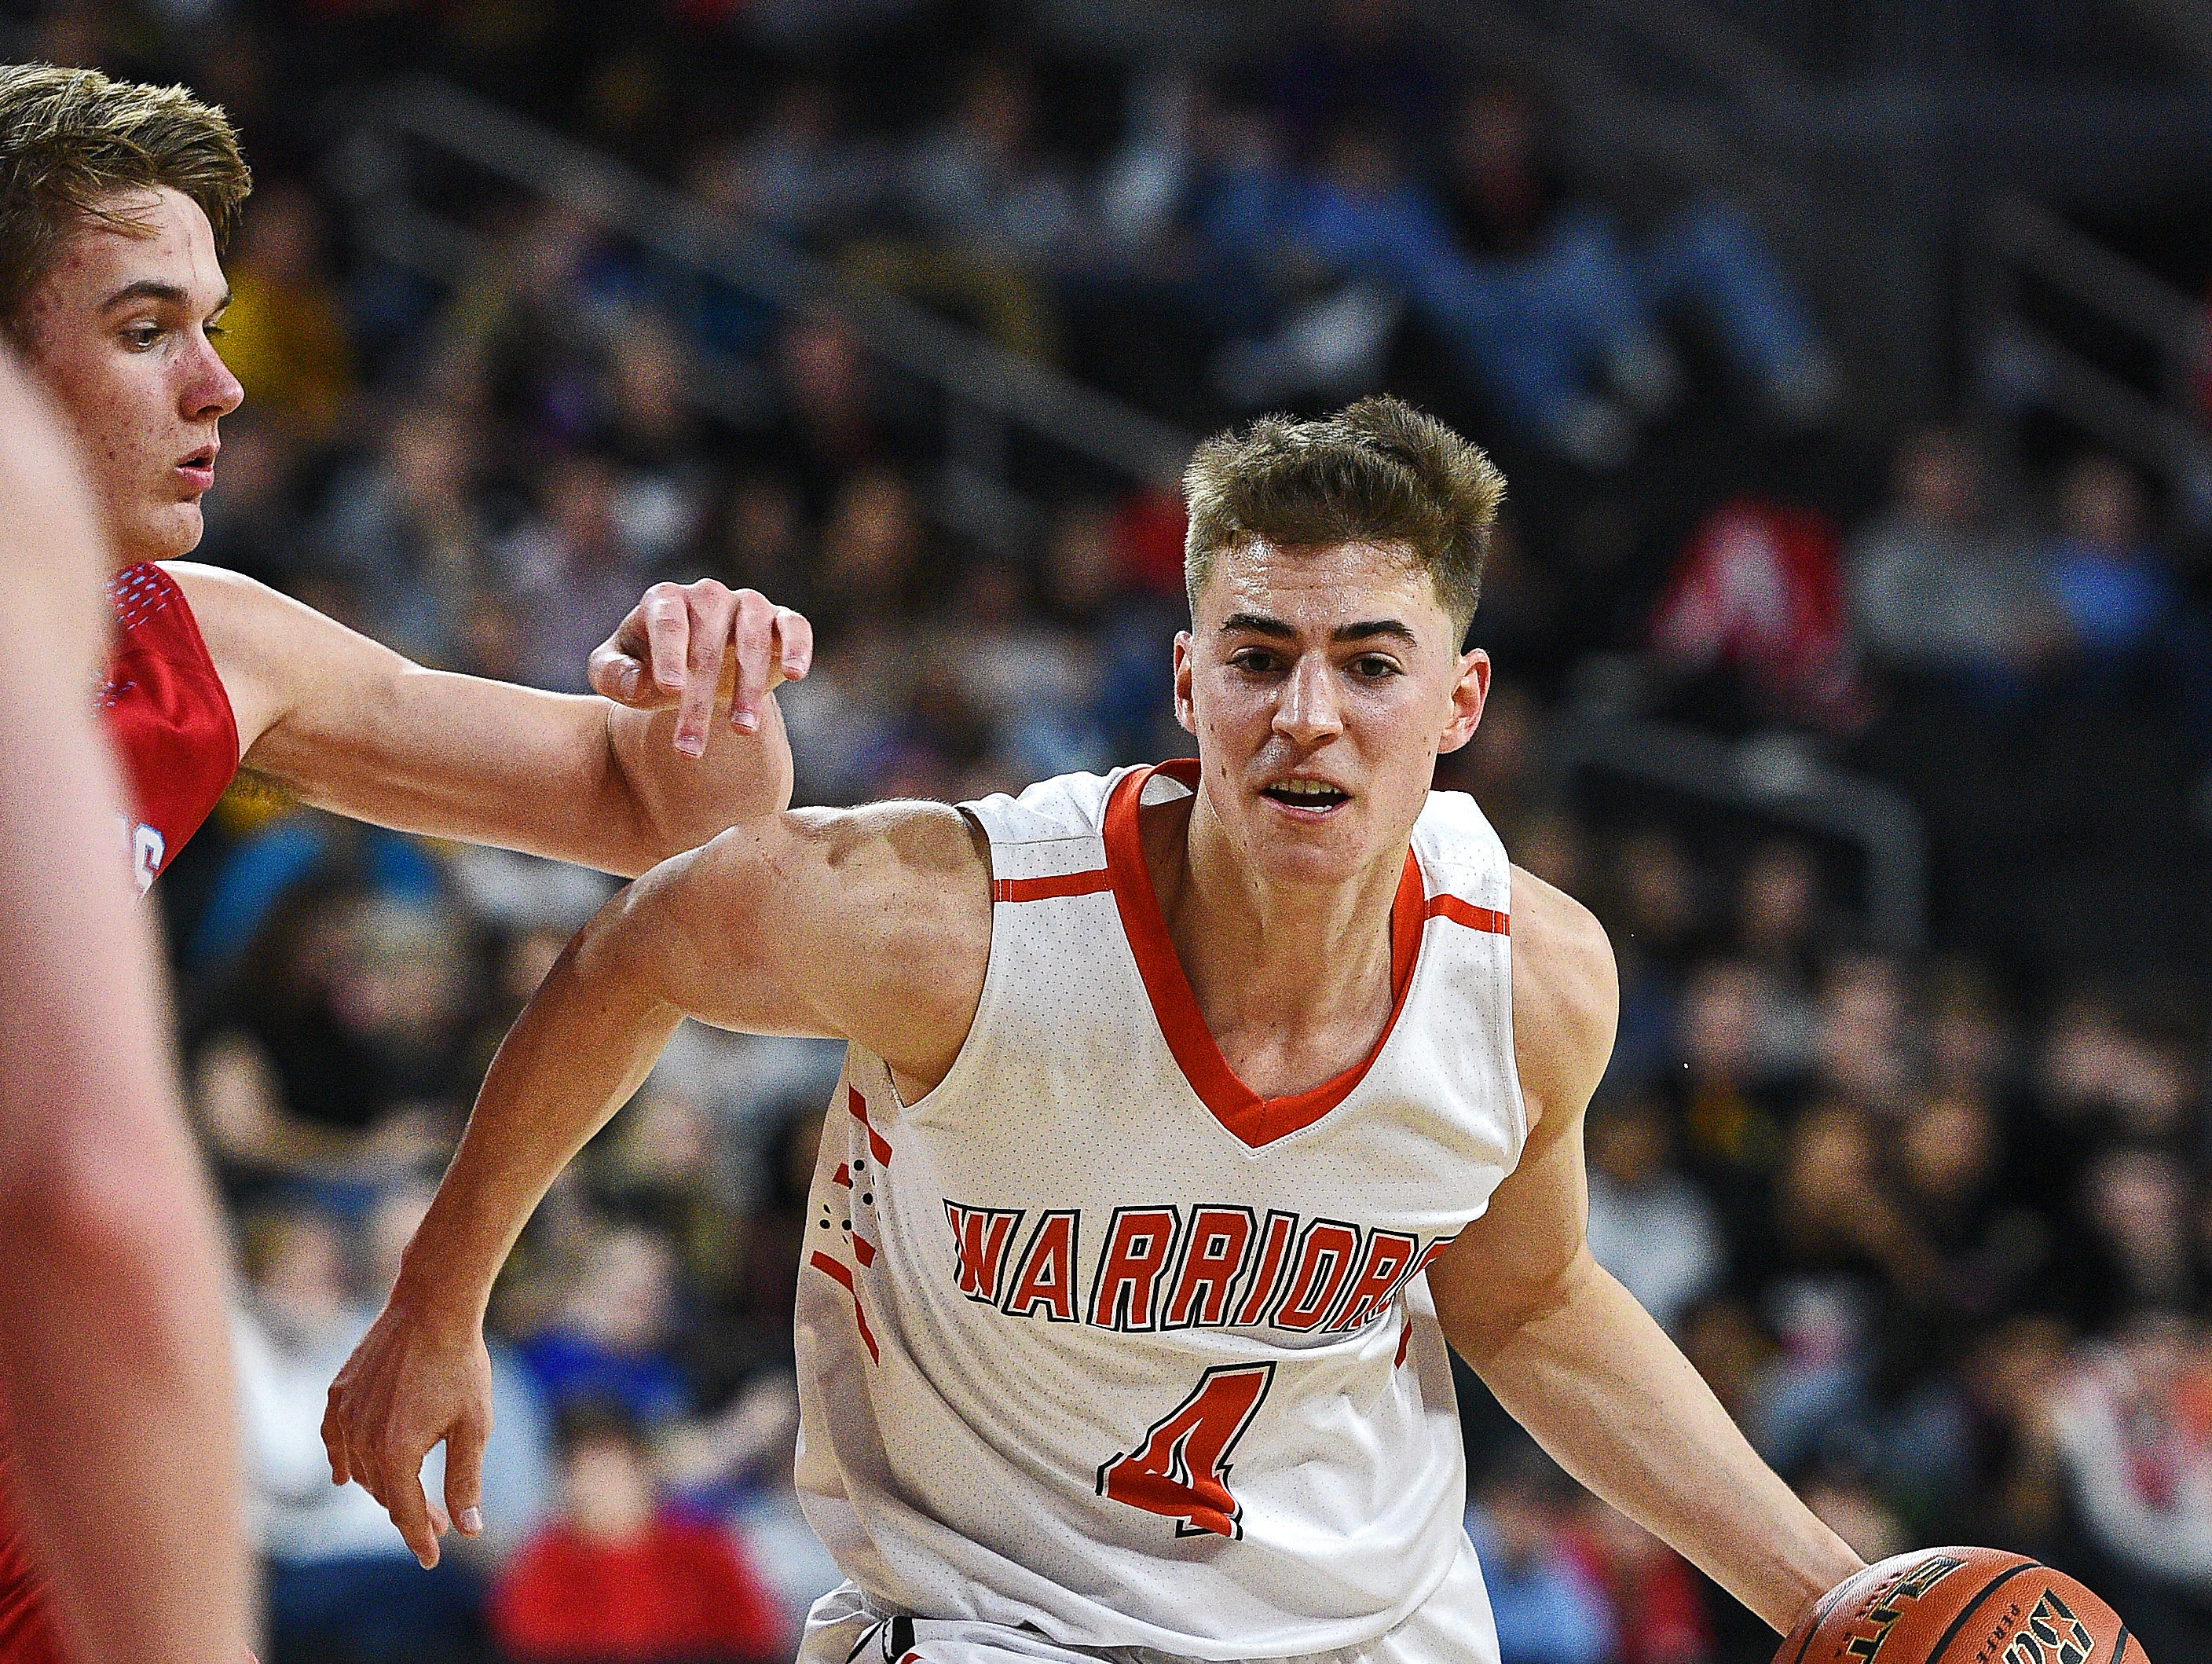 Washington's Sam Siganos (4) drives with the ball during the South Dakota Class AA State Boys Basketball Tournament championship game against Lincoln Saturday, March 19, 2016, at the Denny Sanford Premier Center in Sioux Falls. Lincoln beat Washington 53 to 48.